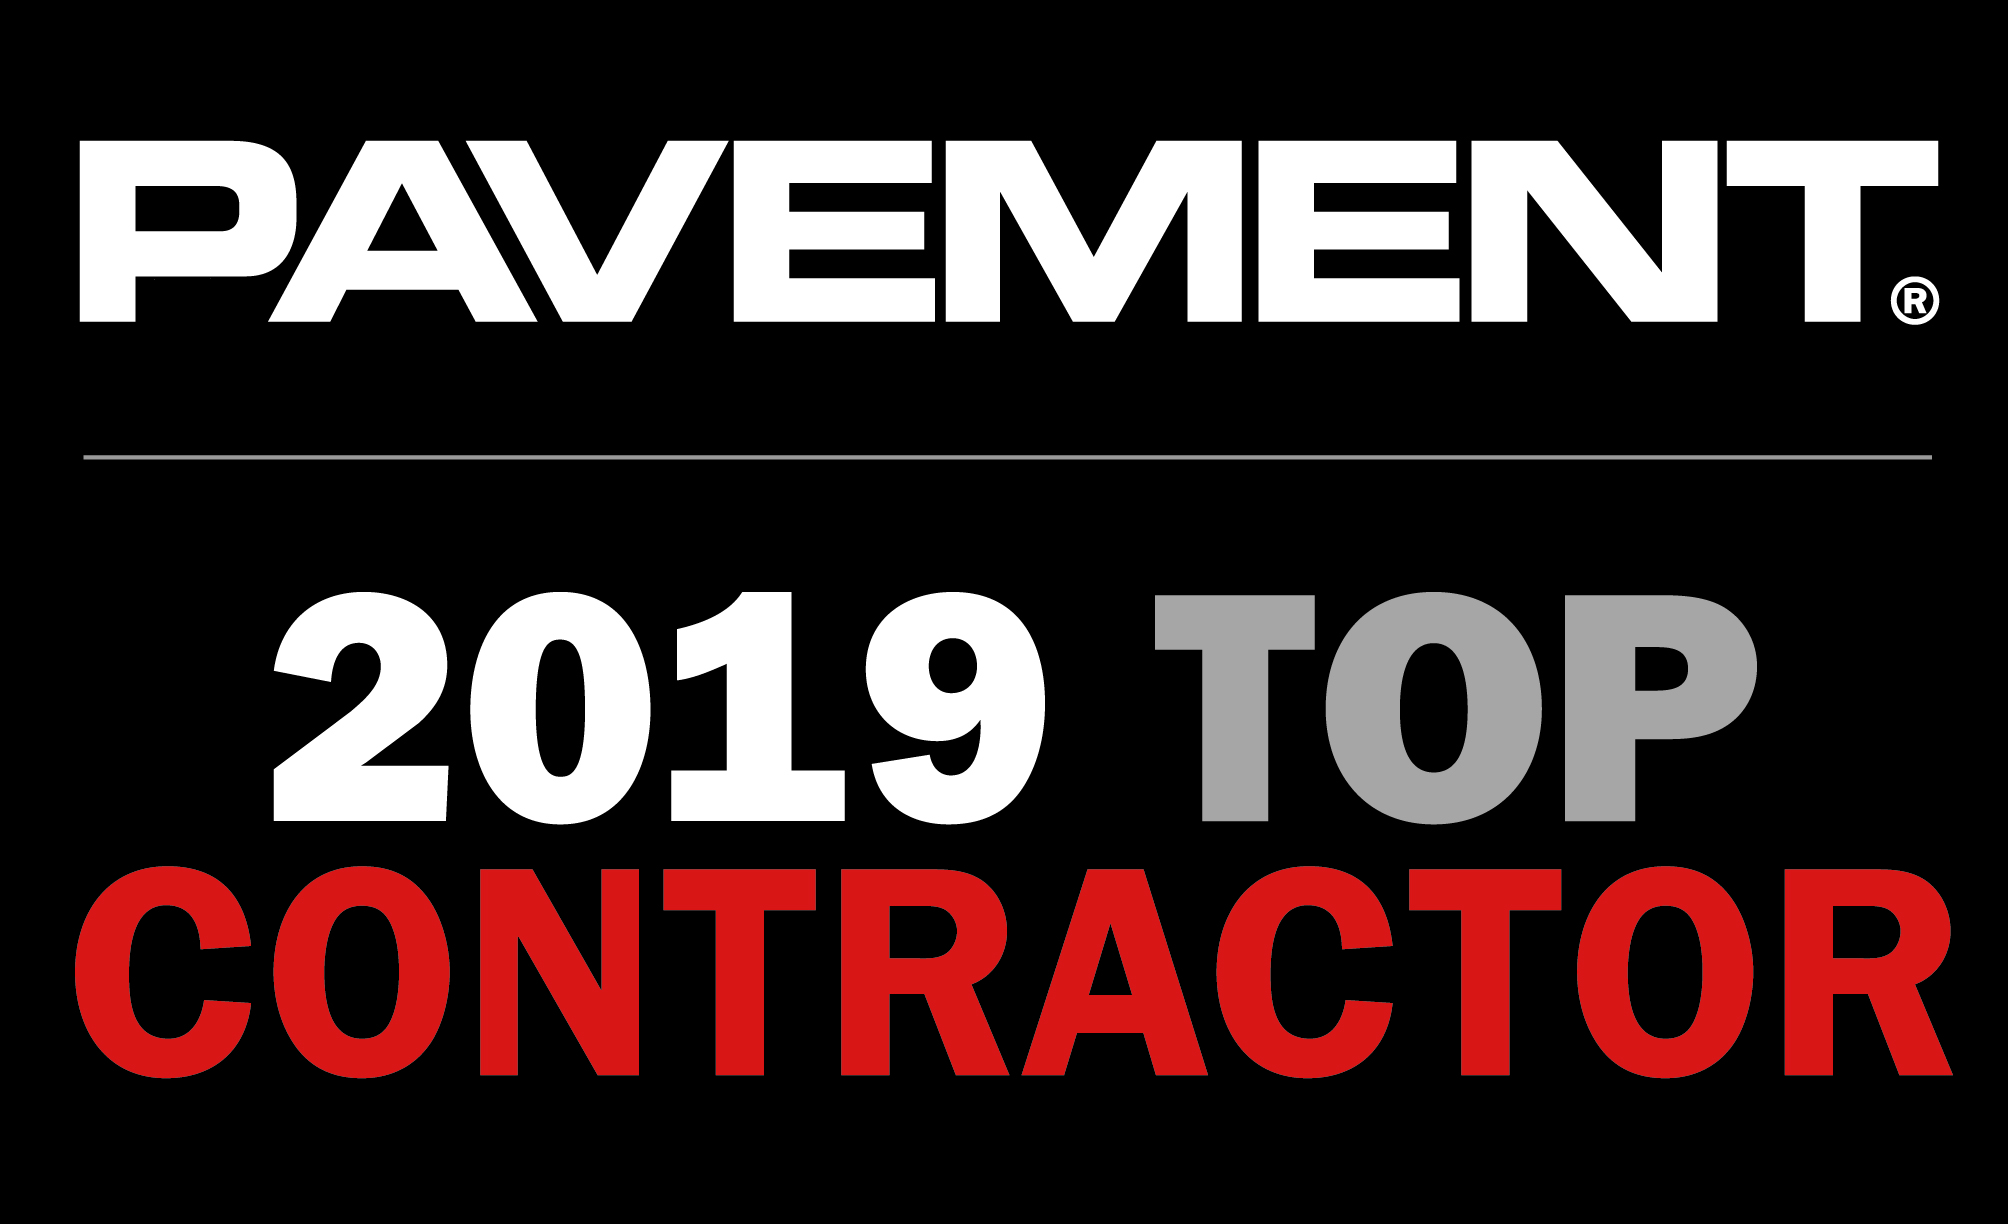 2019 Pavement Top Contractor Award